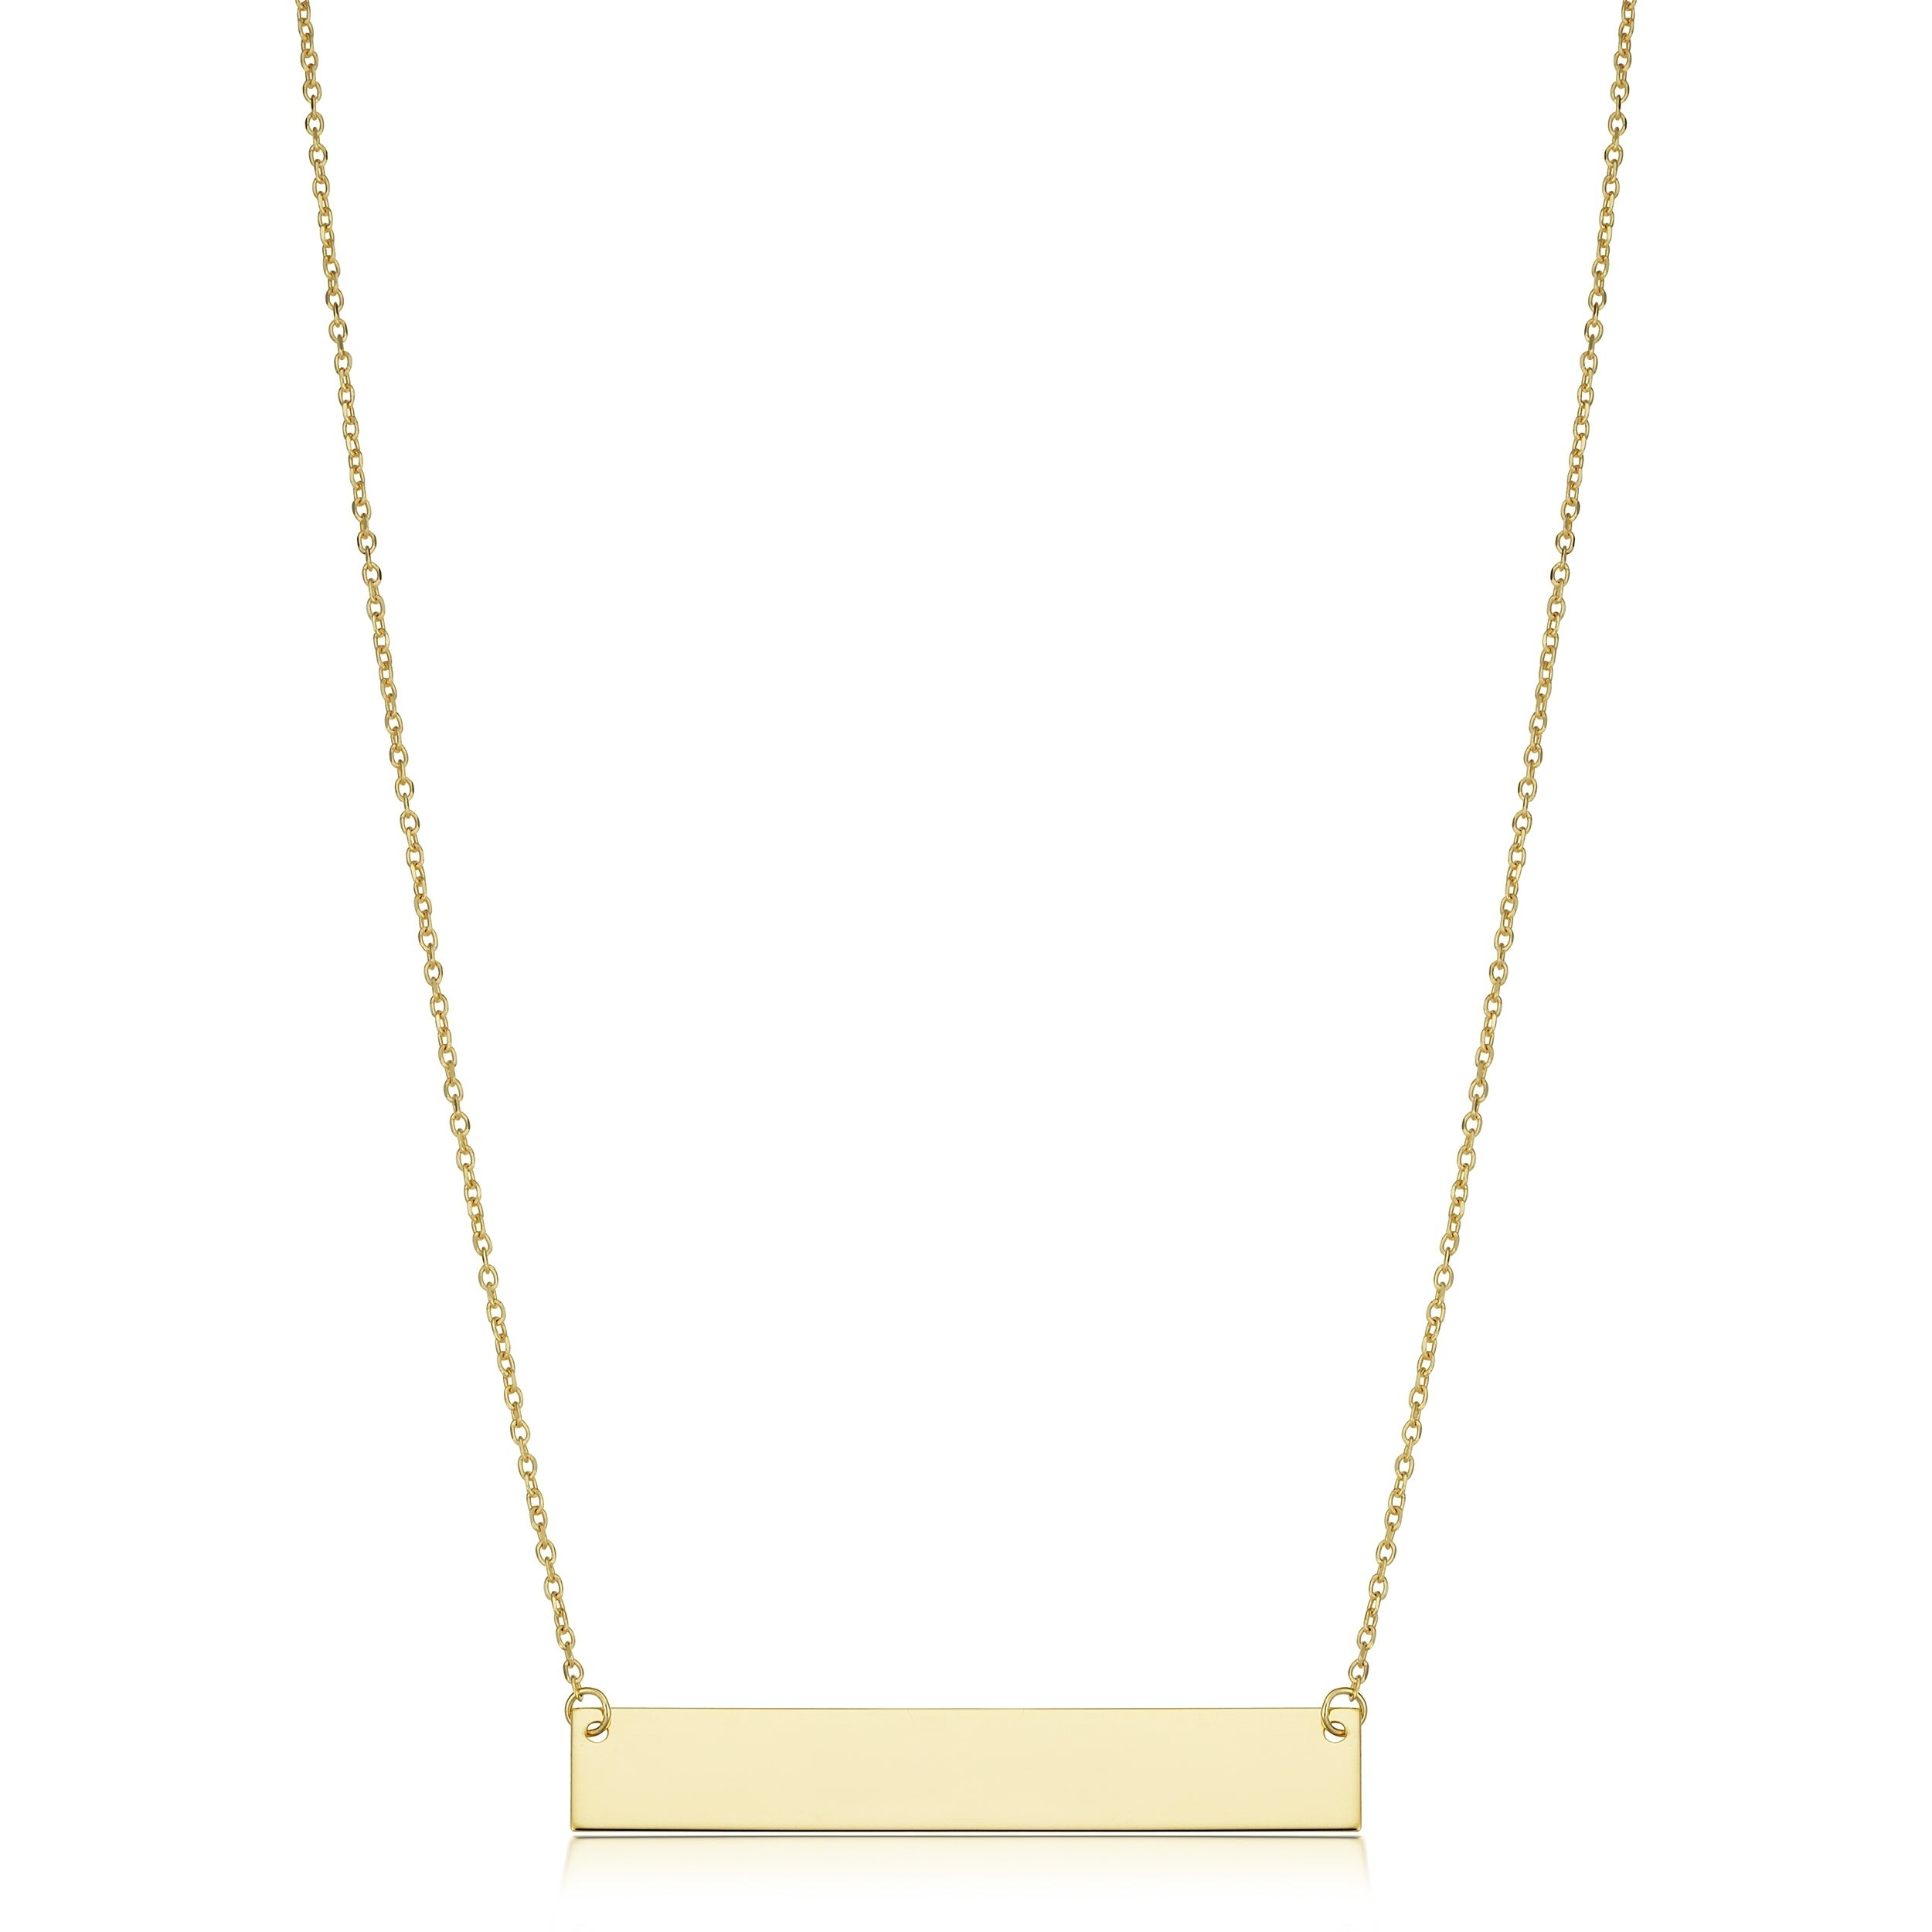 10k Or 14k Gold Engraveable Bar Cable Chain Necklace (18 Inch) Throughout Most Current Classic Cable Chain Necklaces (View 3 of 25)